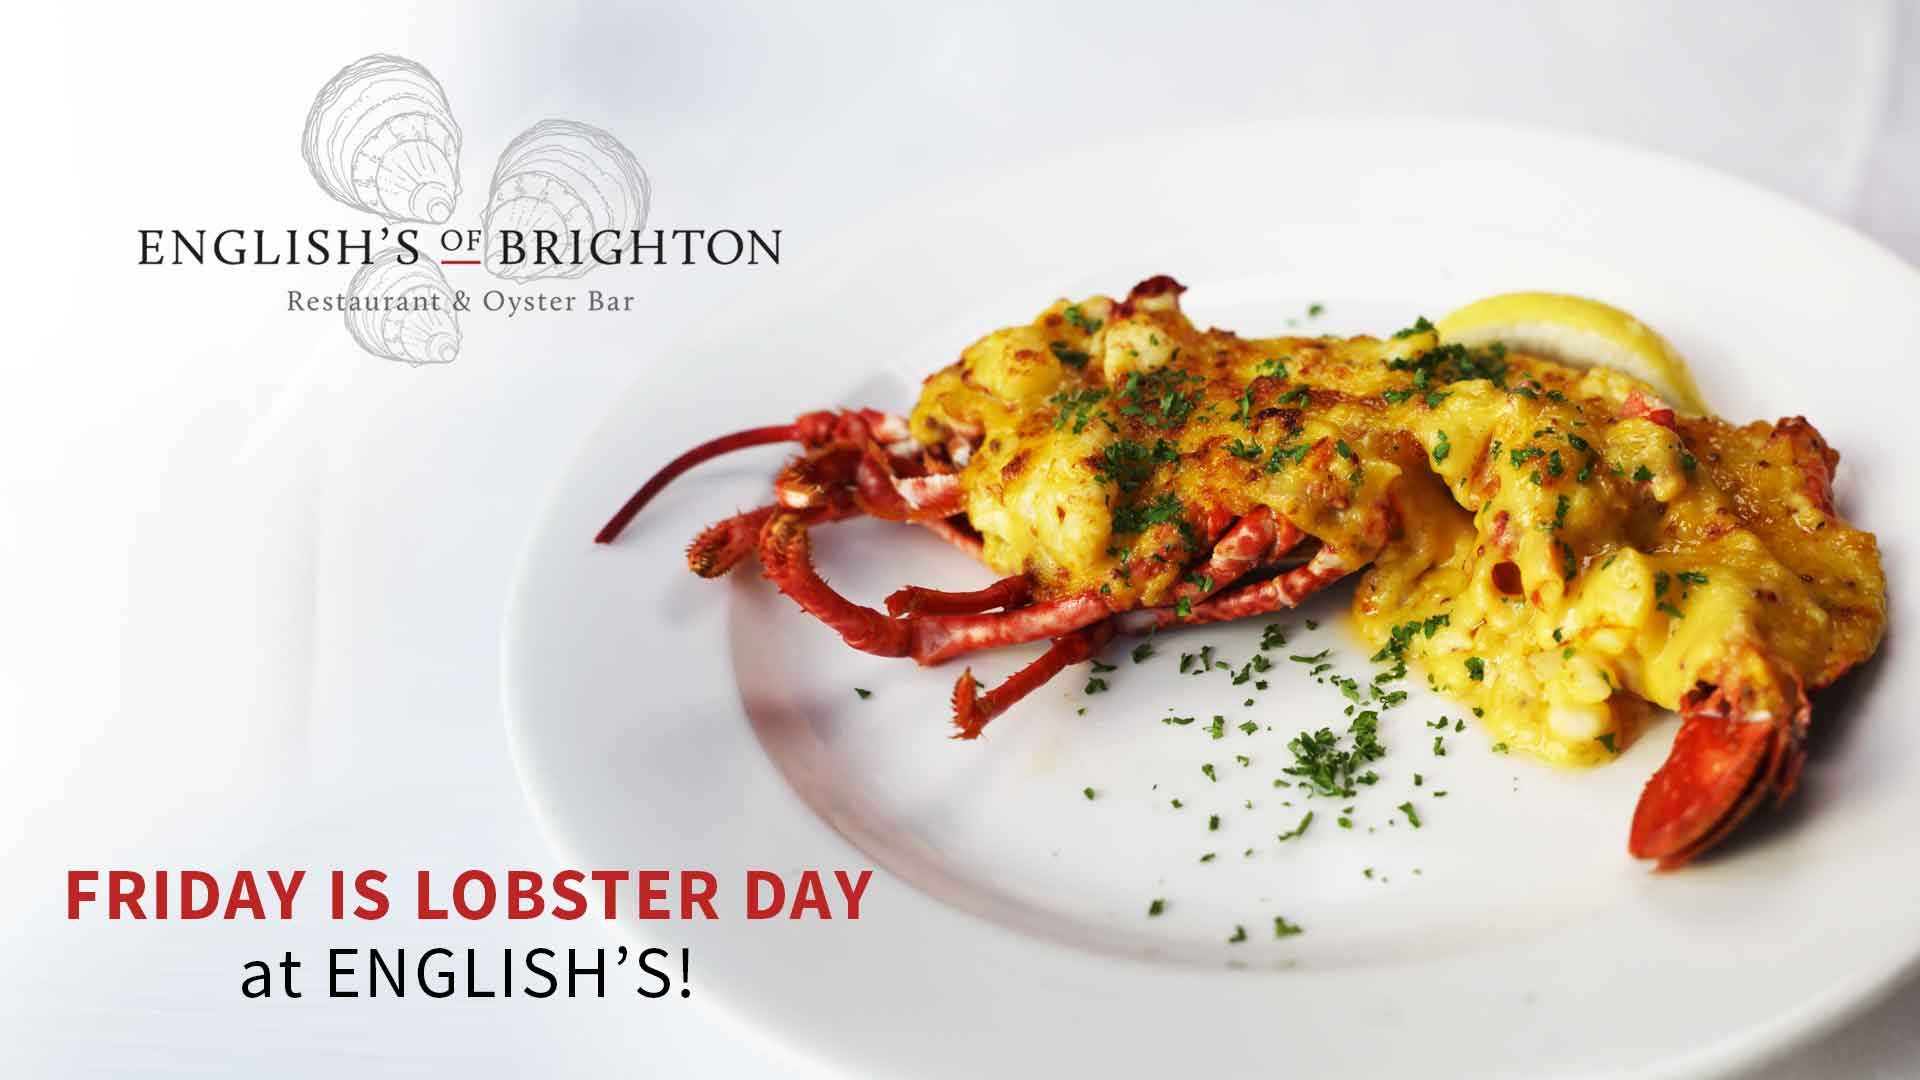 LobsterDay_ImagesSocials05